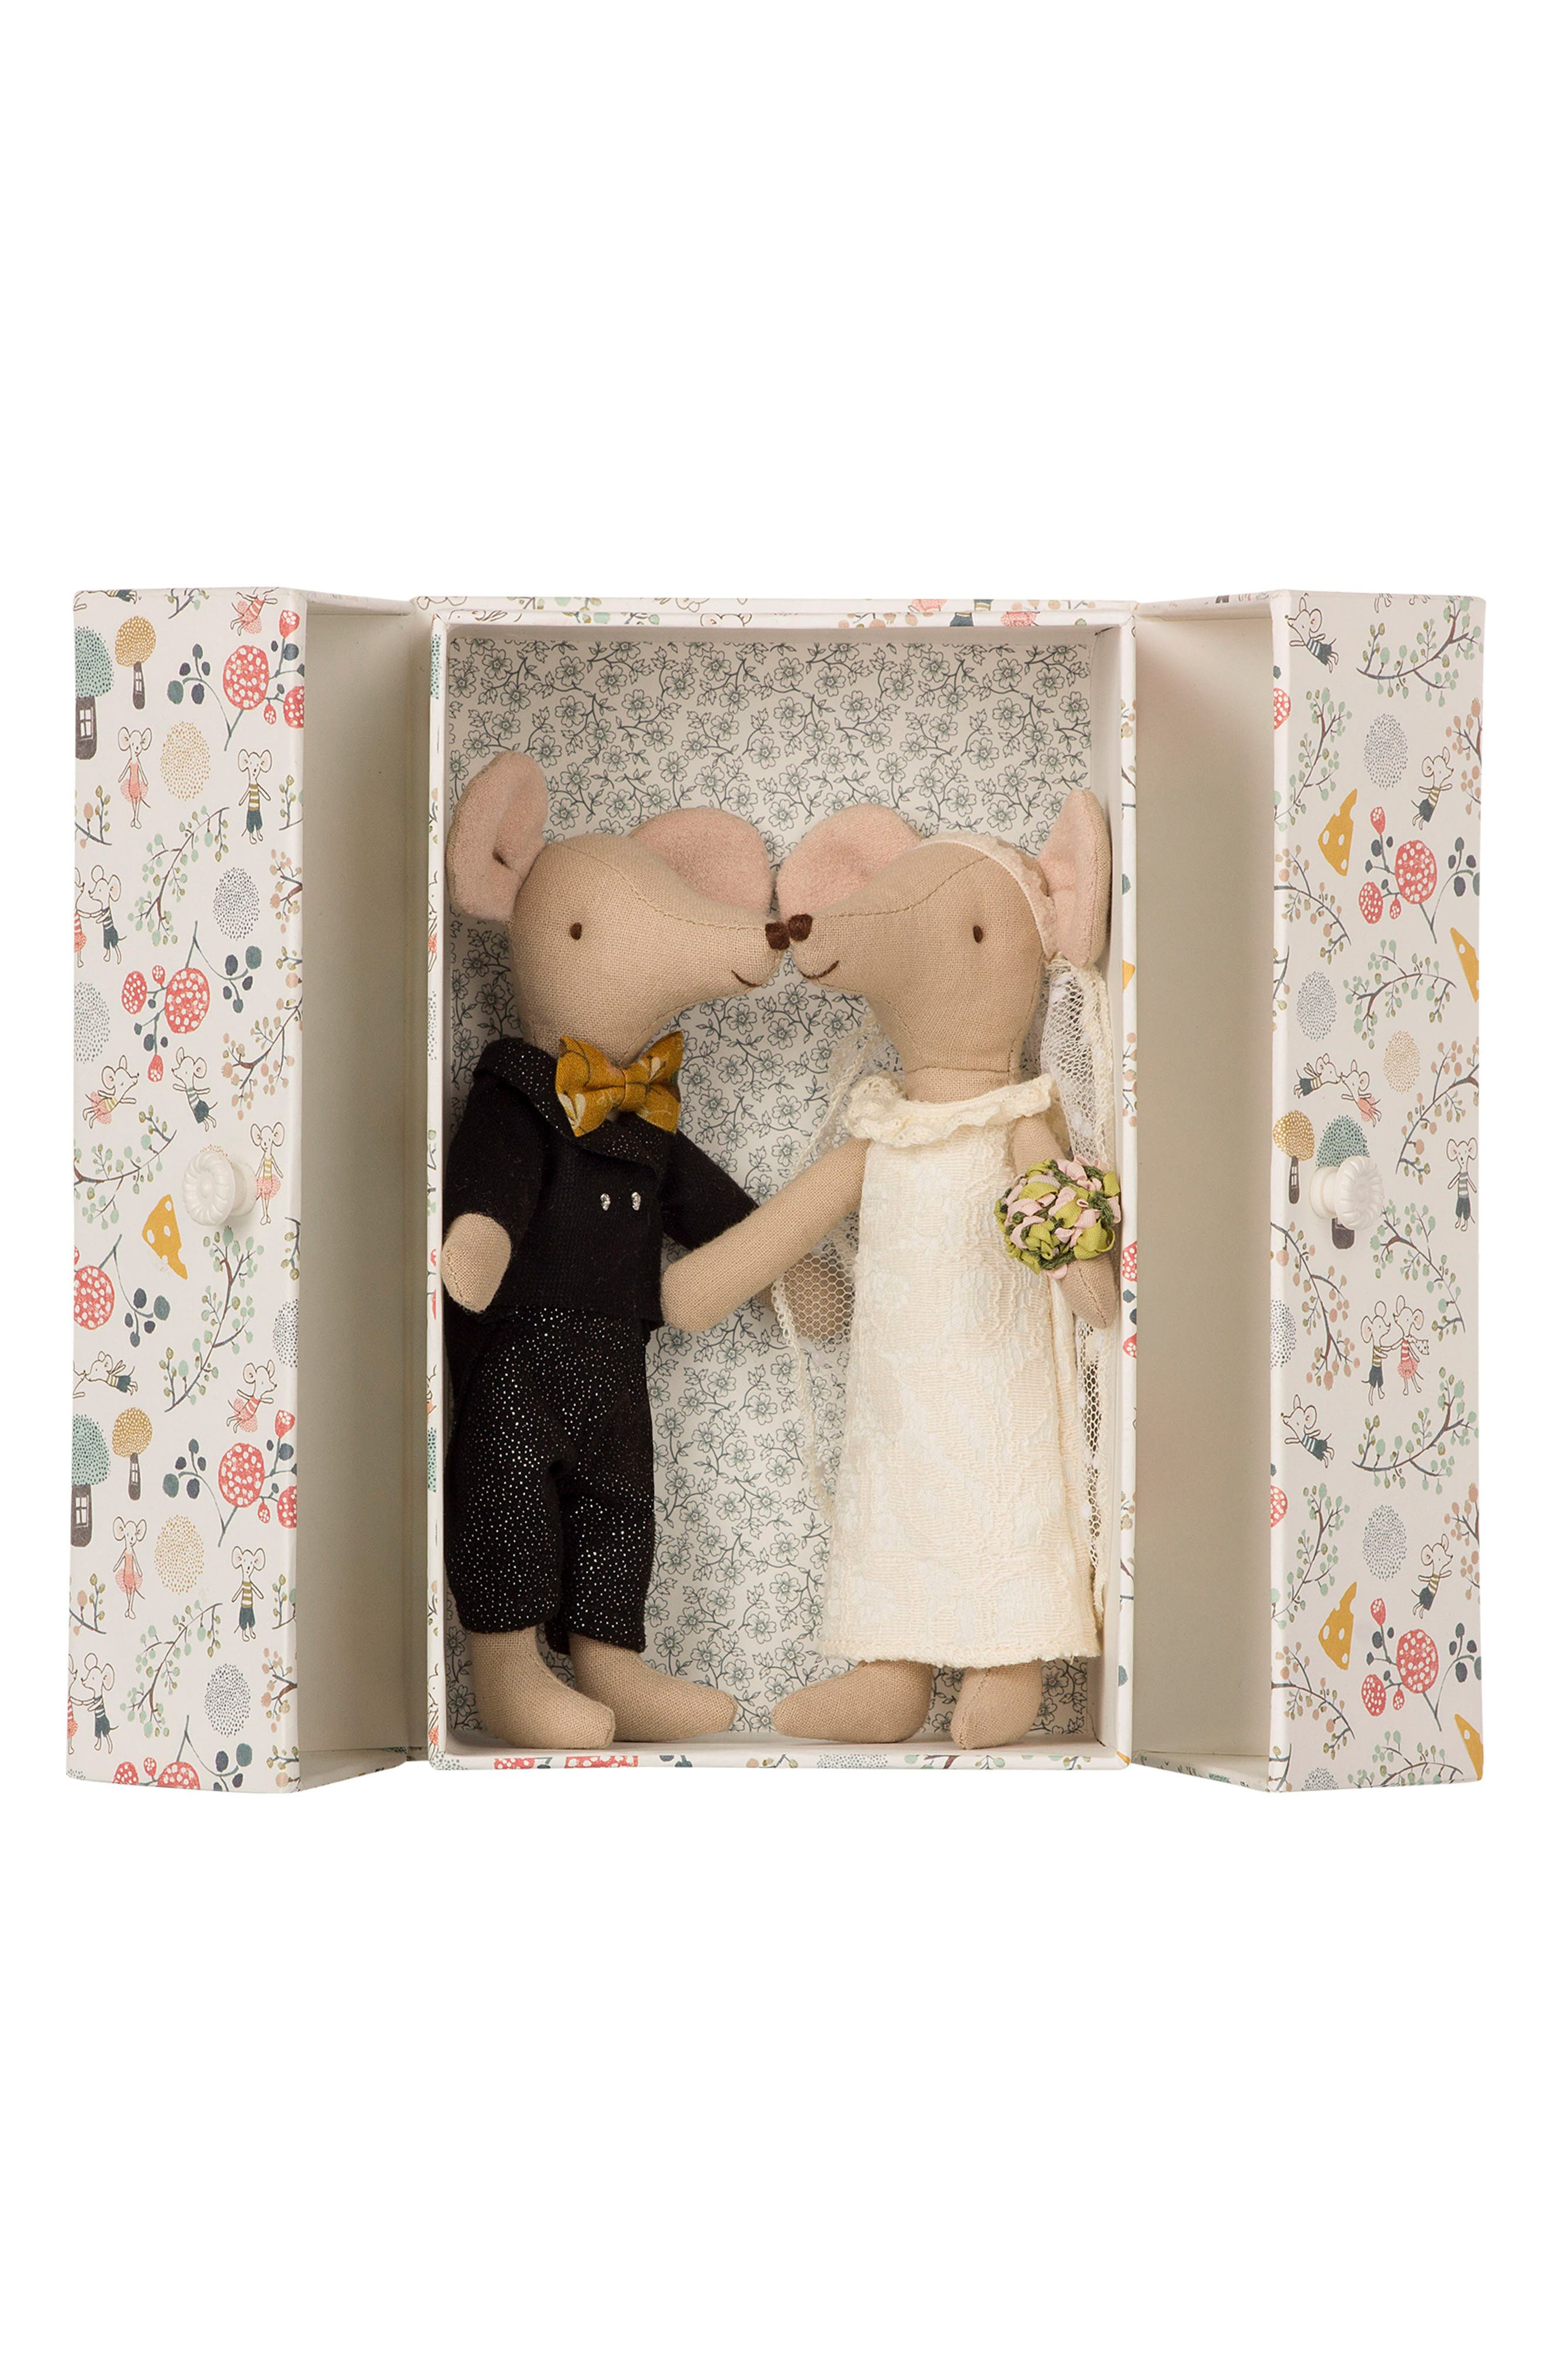 3-Piece Wedding Mice Couple in Box,                             Main thumbnail 1, color,                             White And Blach Dress